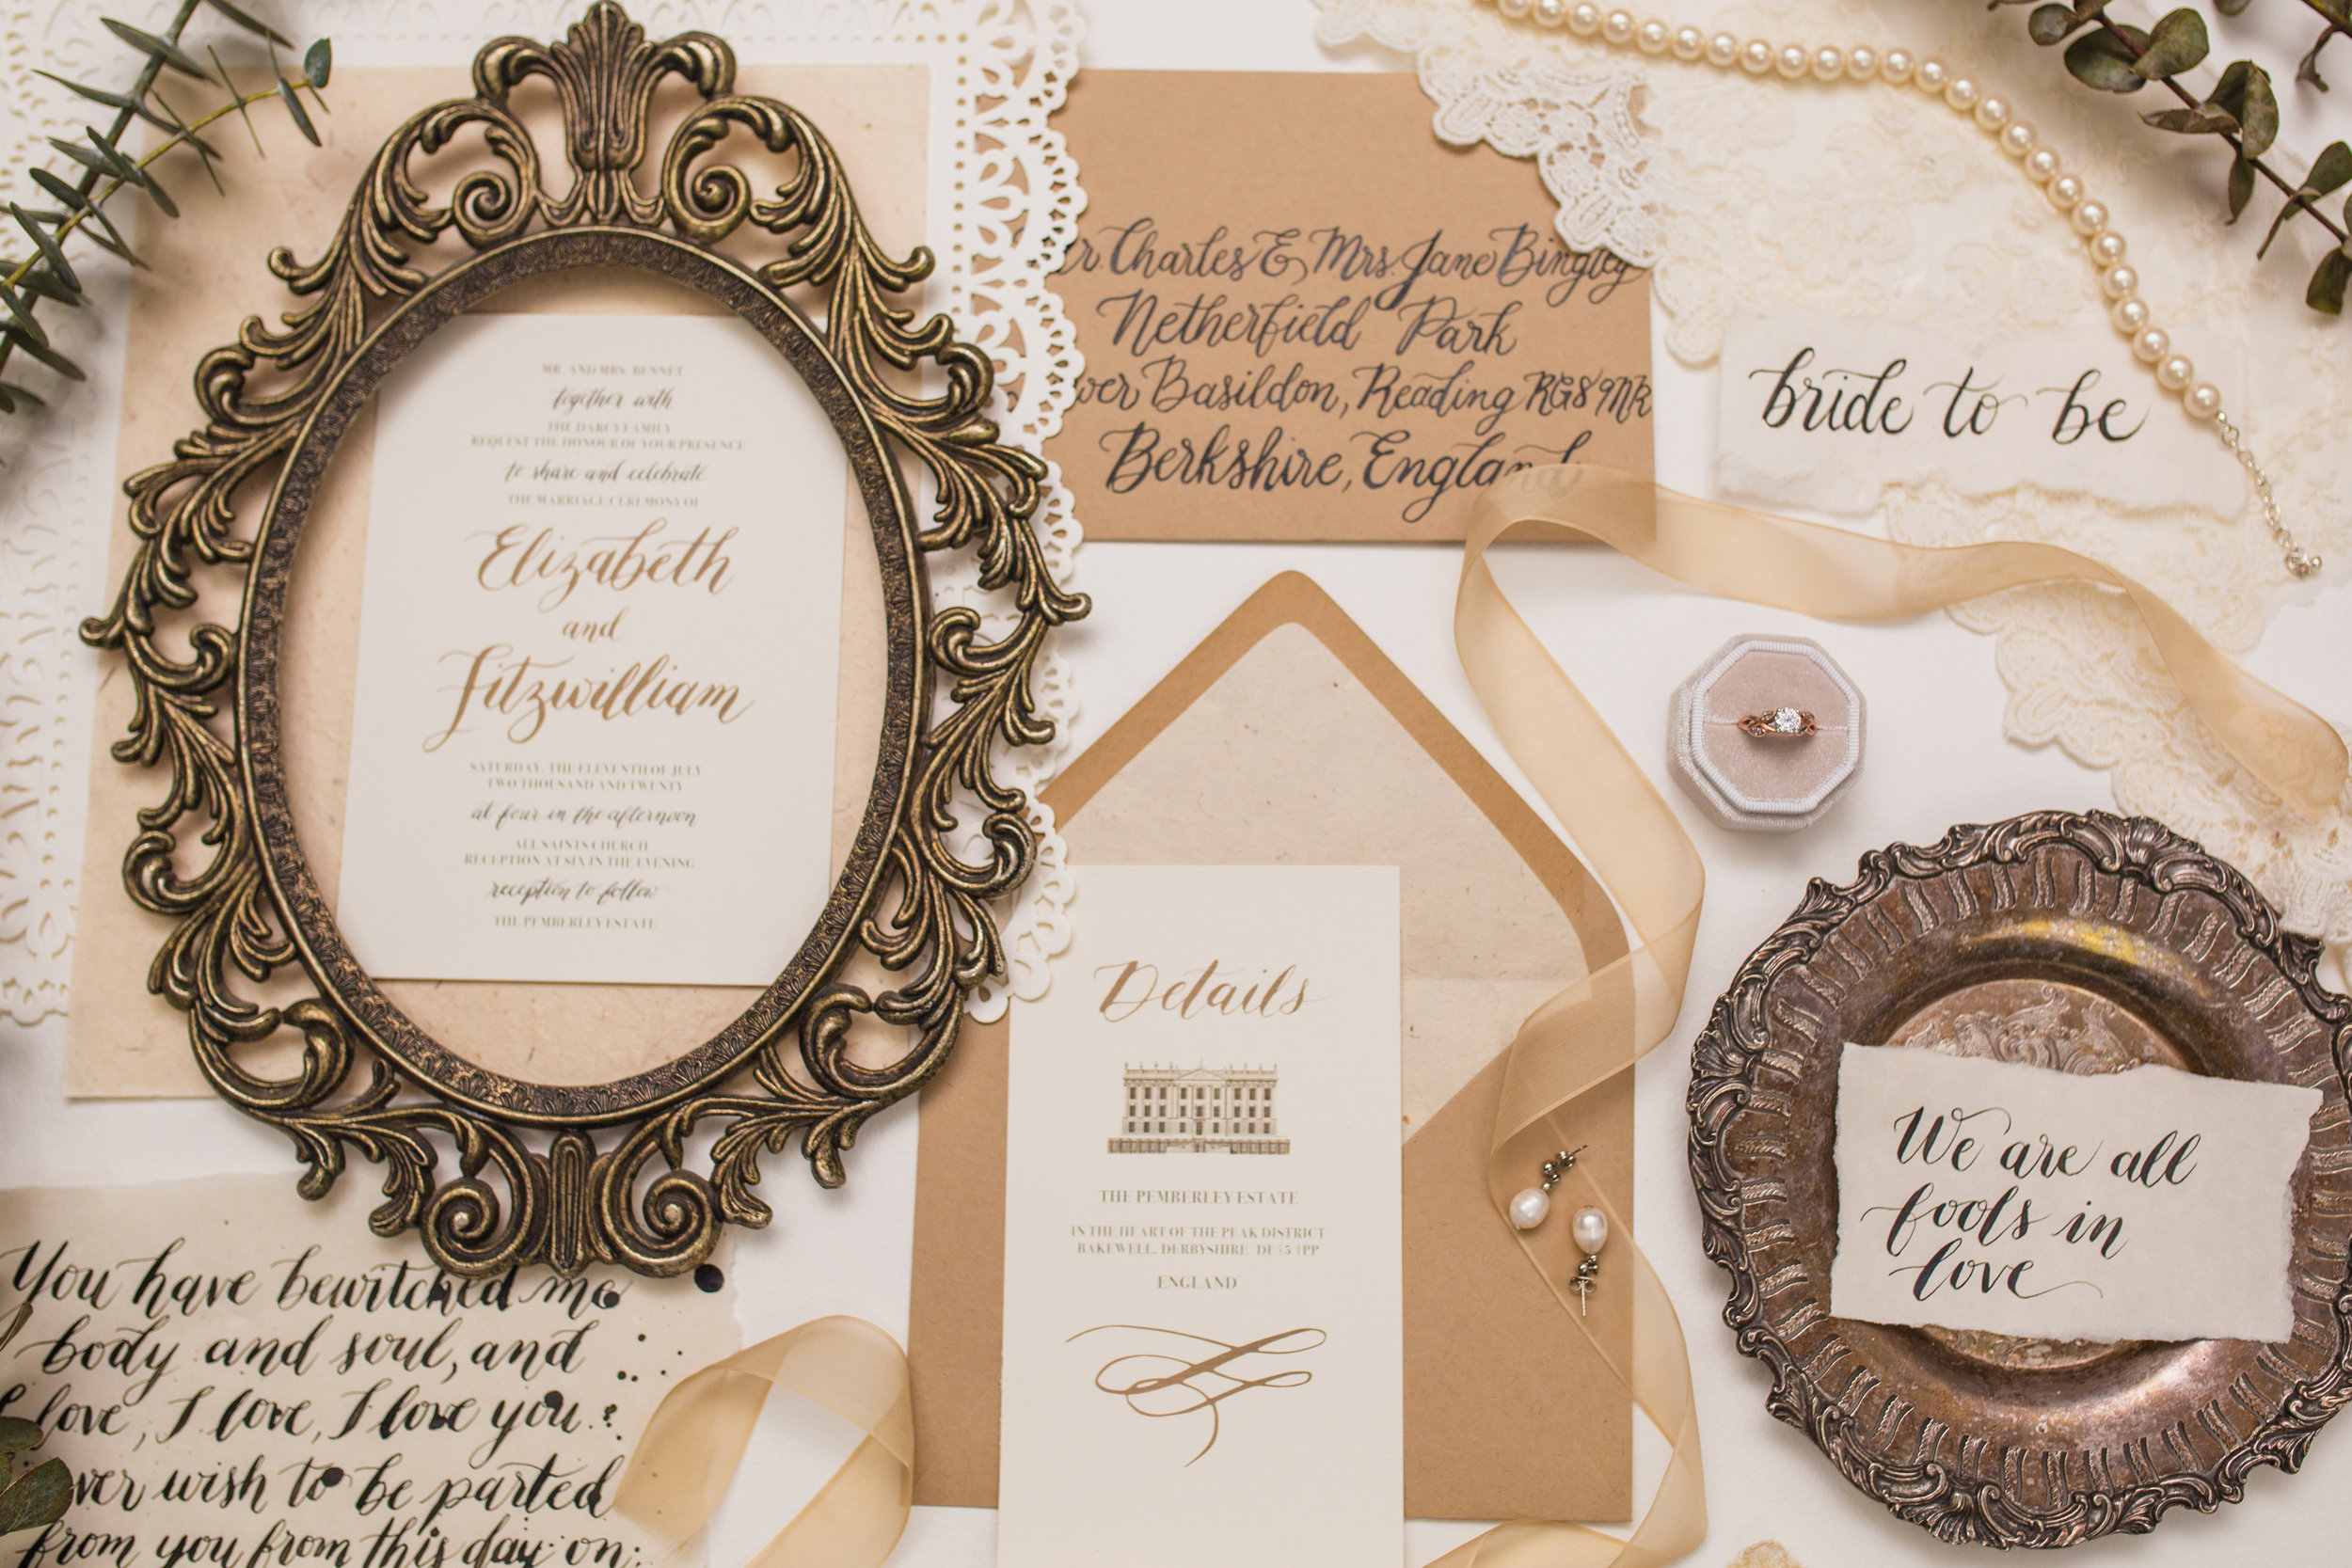 Torontoweddinginvitations-9.jpg